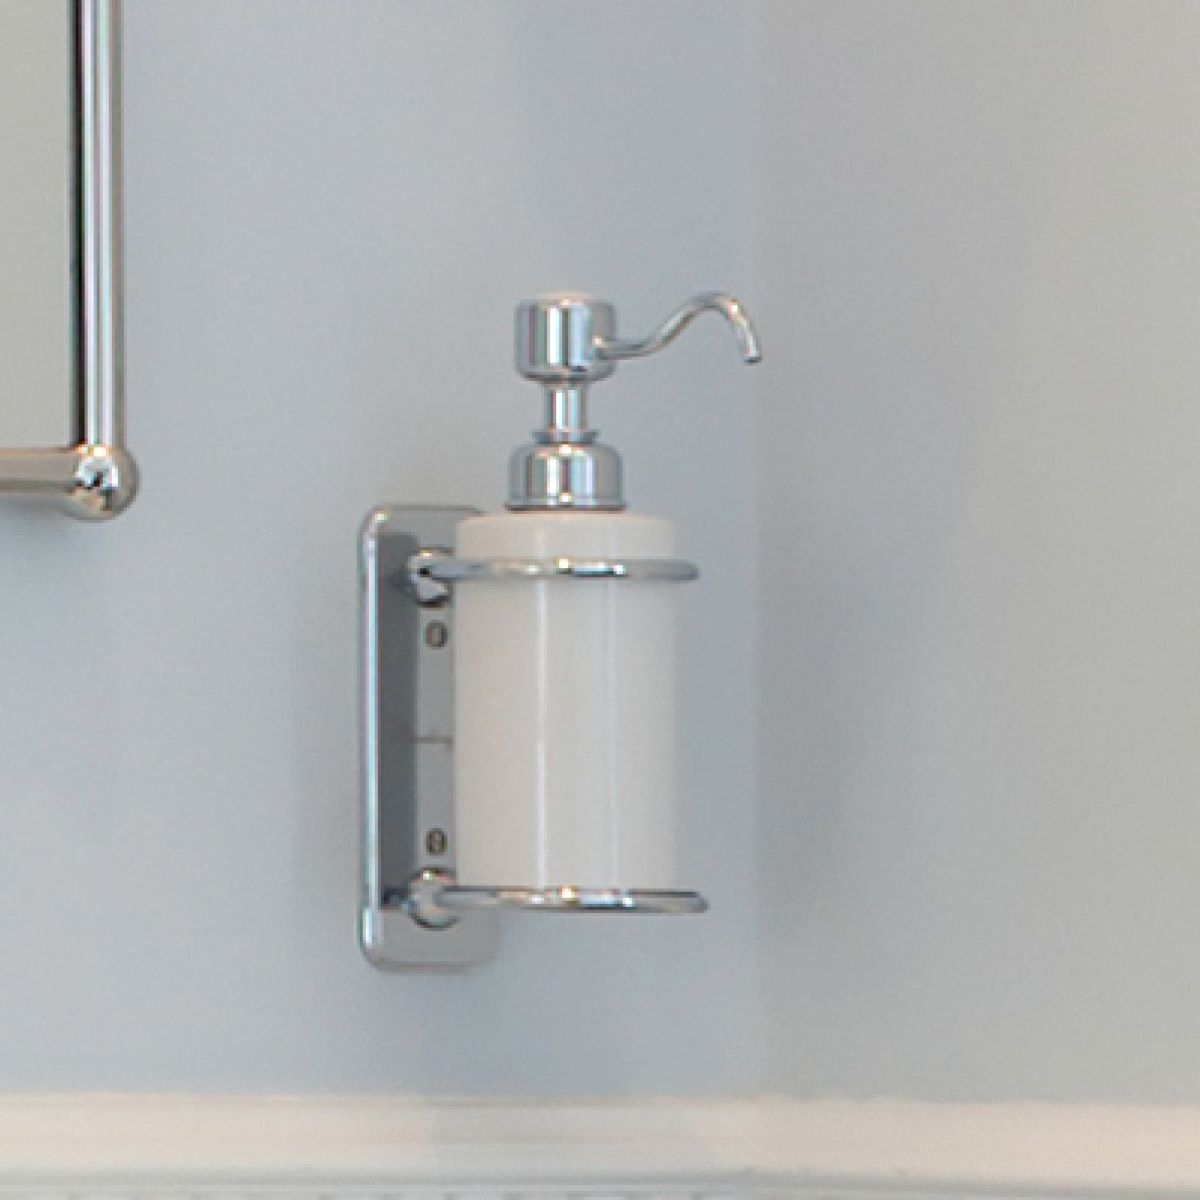 Industrial Soap Dispenser Wall Mounted Wall Mounted Dish Soap Dispenser Madison Art Center Design